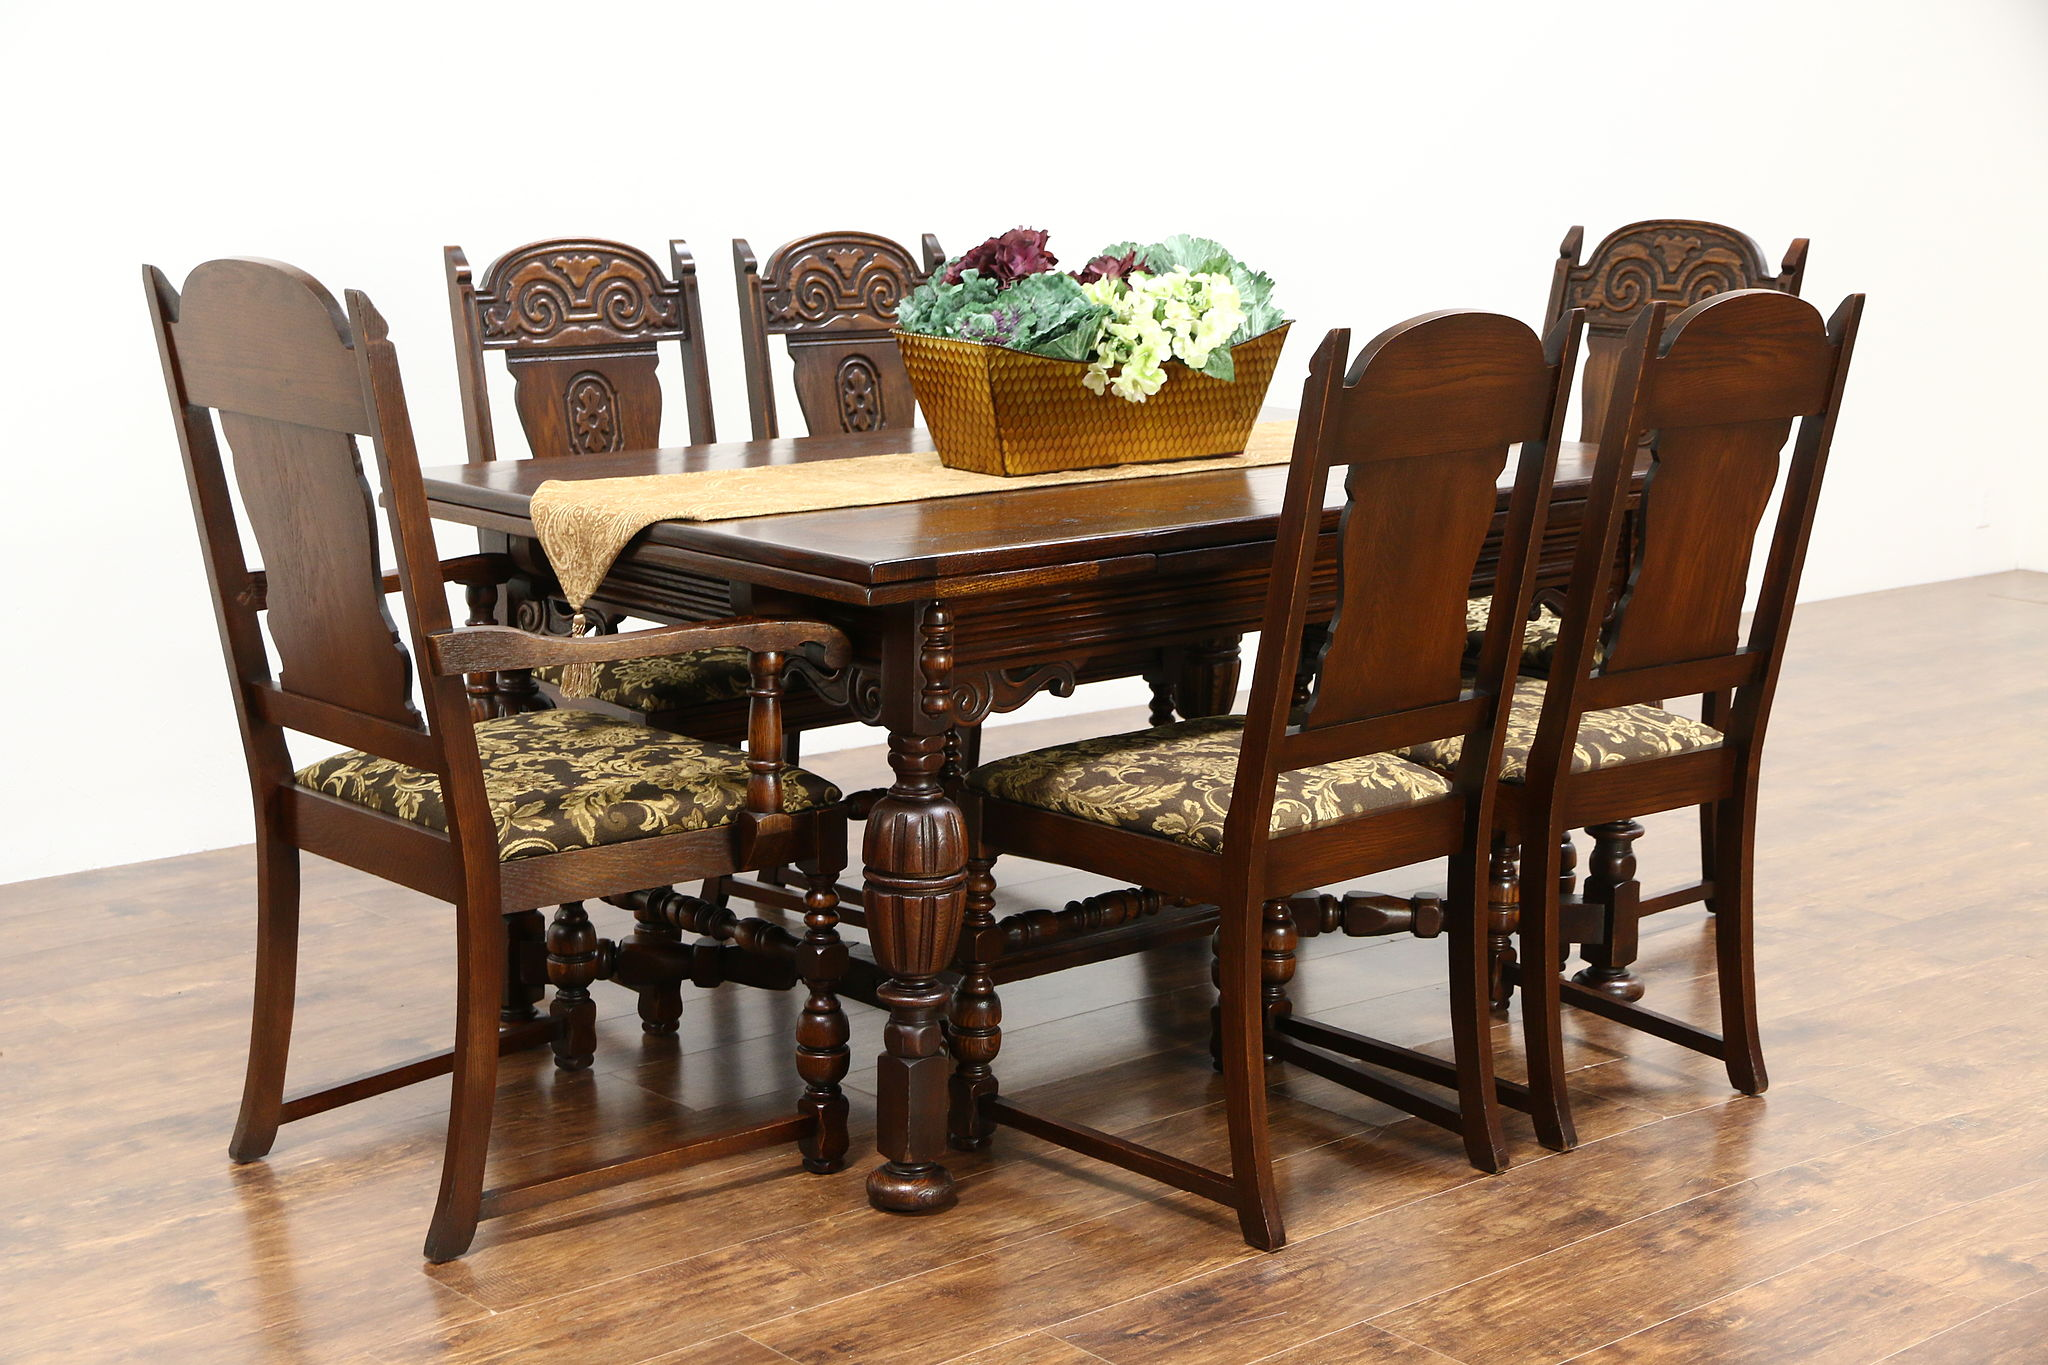 Beautiful English Tudor Style 1920 Antique Oak Dining Set, 6 Chairs New Upholstery,  Table